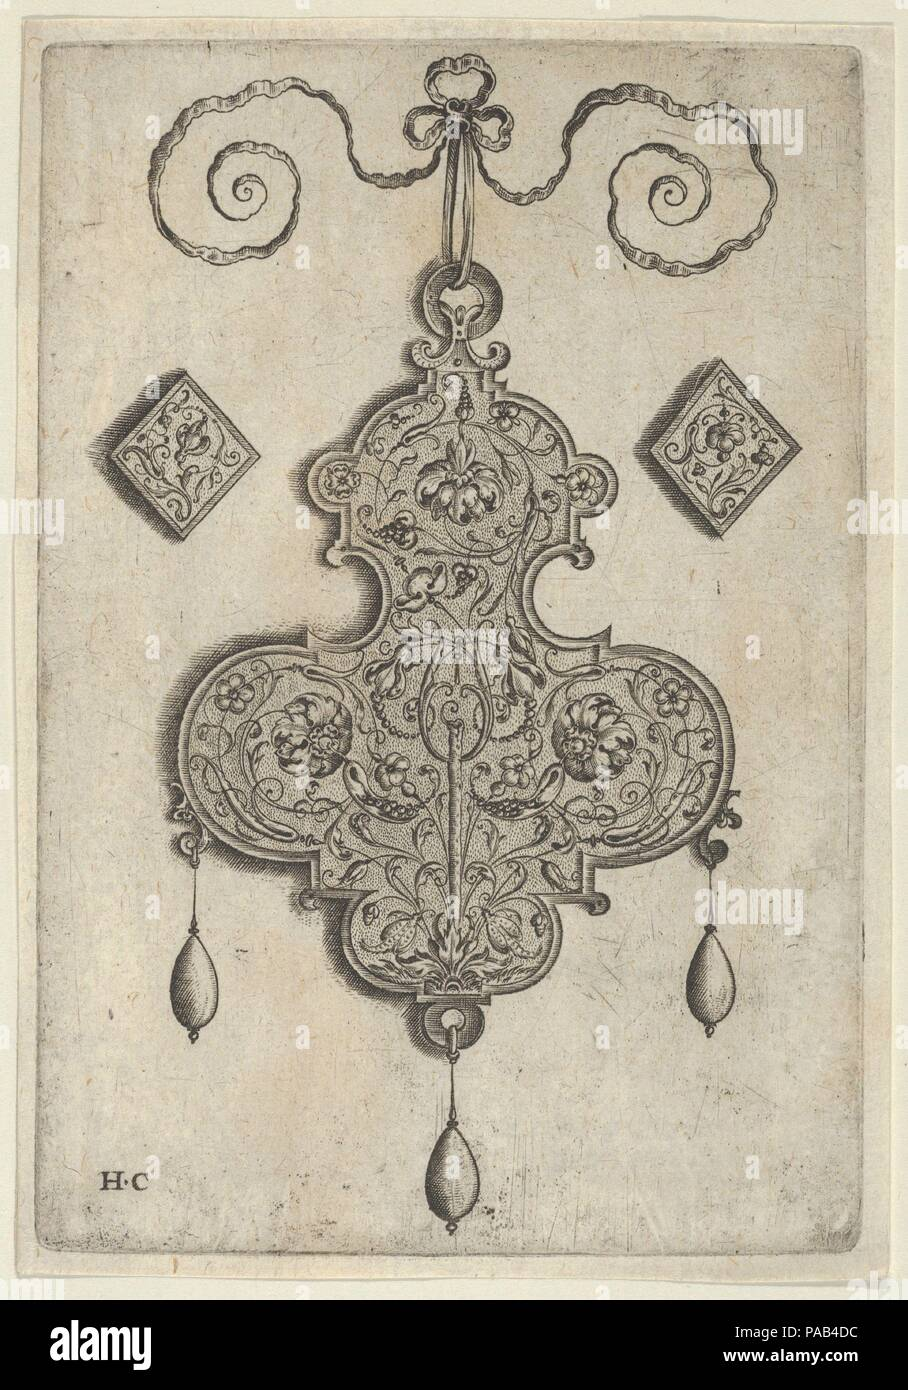 Design for the Verso of a Pendant with Three Large Flowers. Artist: Jan Collaert I (Netherlandish, Antwerp ca. 1530-1581 Antwerp). Dimensions: Sheet: 5 3/4 × 4 in. (14.6 × 10.1 cm). Publisher: published by Hans Liefrinck (Augsburg (?) 1518?-1573 Antwerp) , in Antwerp. Series/Portfolio: Pendant Designs with Deities in Niches and Flower-Arabesques. Date: before 1573.  Vertical panel with the design for a pendant verso at center. The ornament is decorated with a flower-arabesque pattern, with a stick or plant rising from bottom center and a large flower in each of the ornament's three arms. Flank - Stock Image